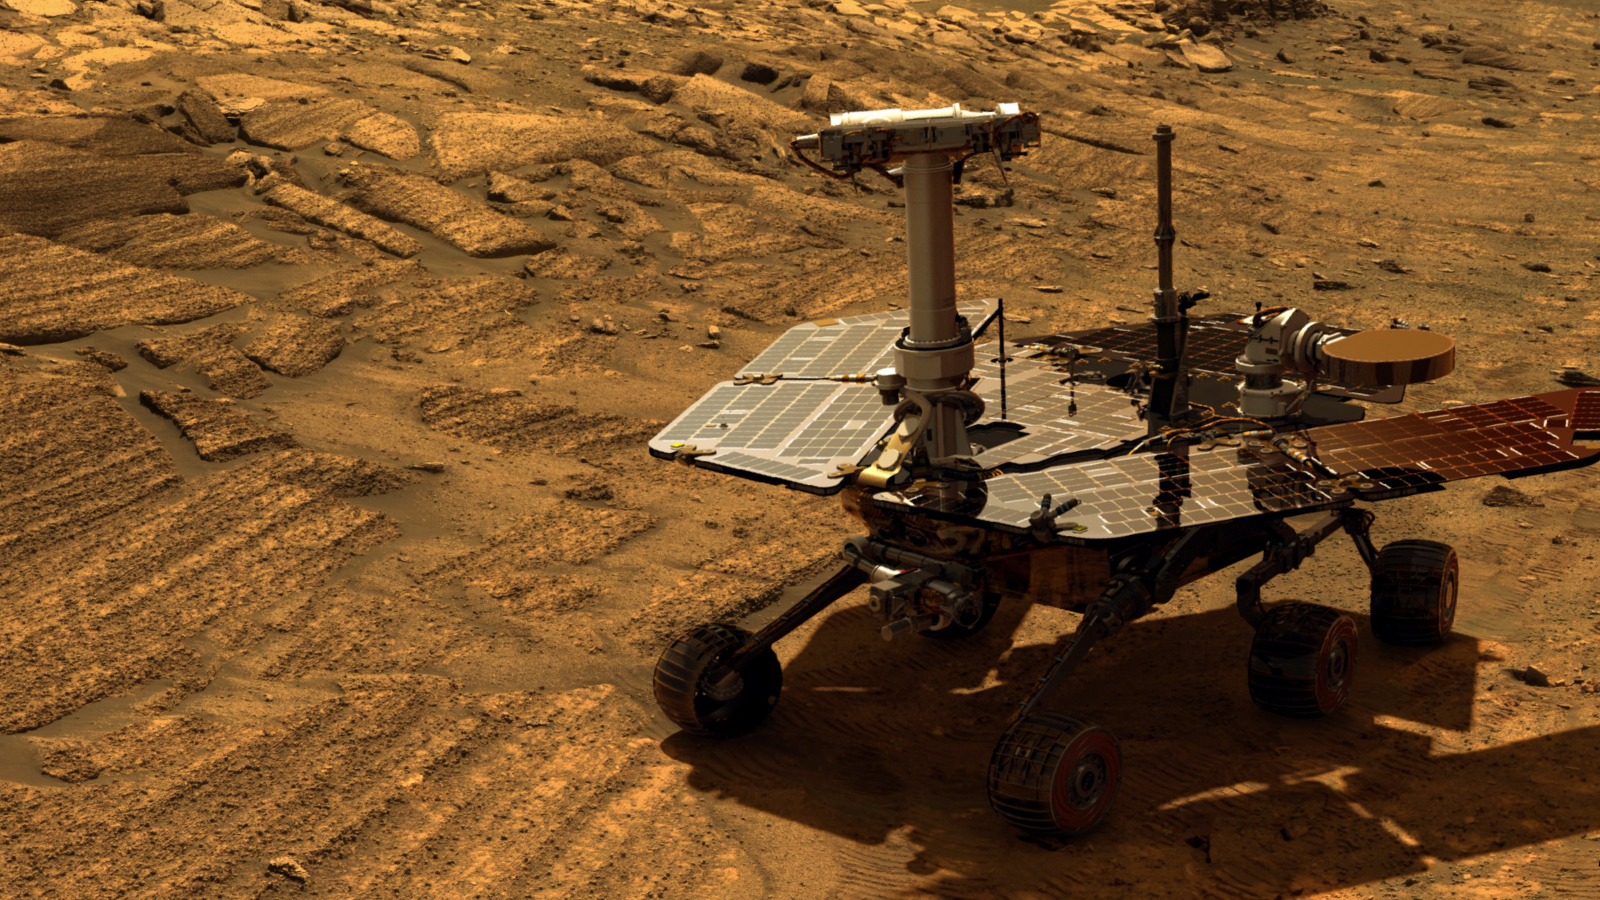 Mars to experience dust storms leading to loss in atmospheric gases